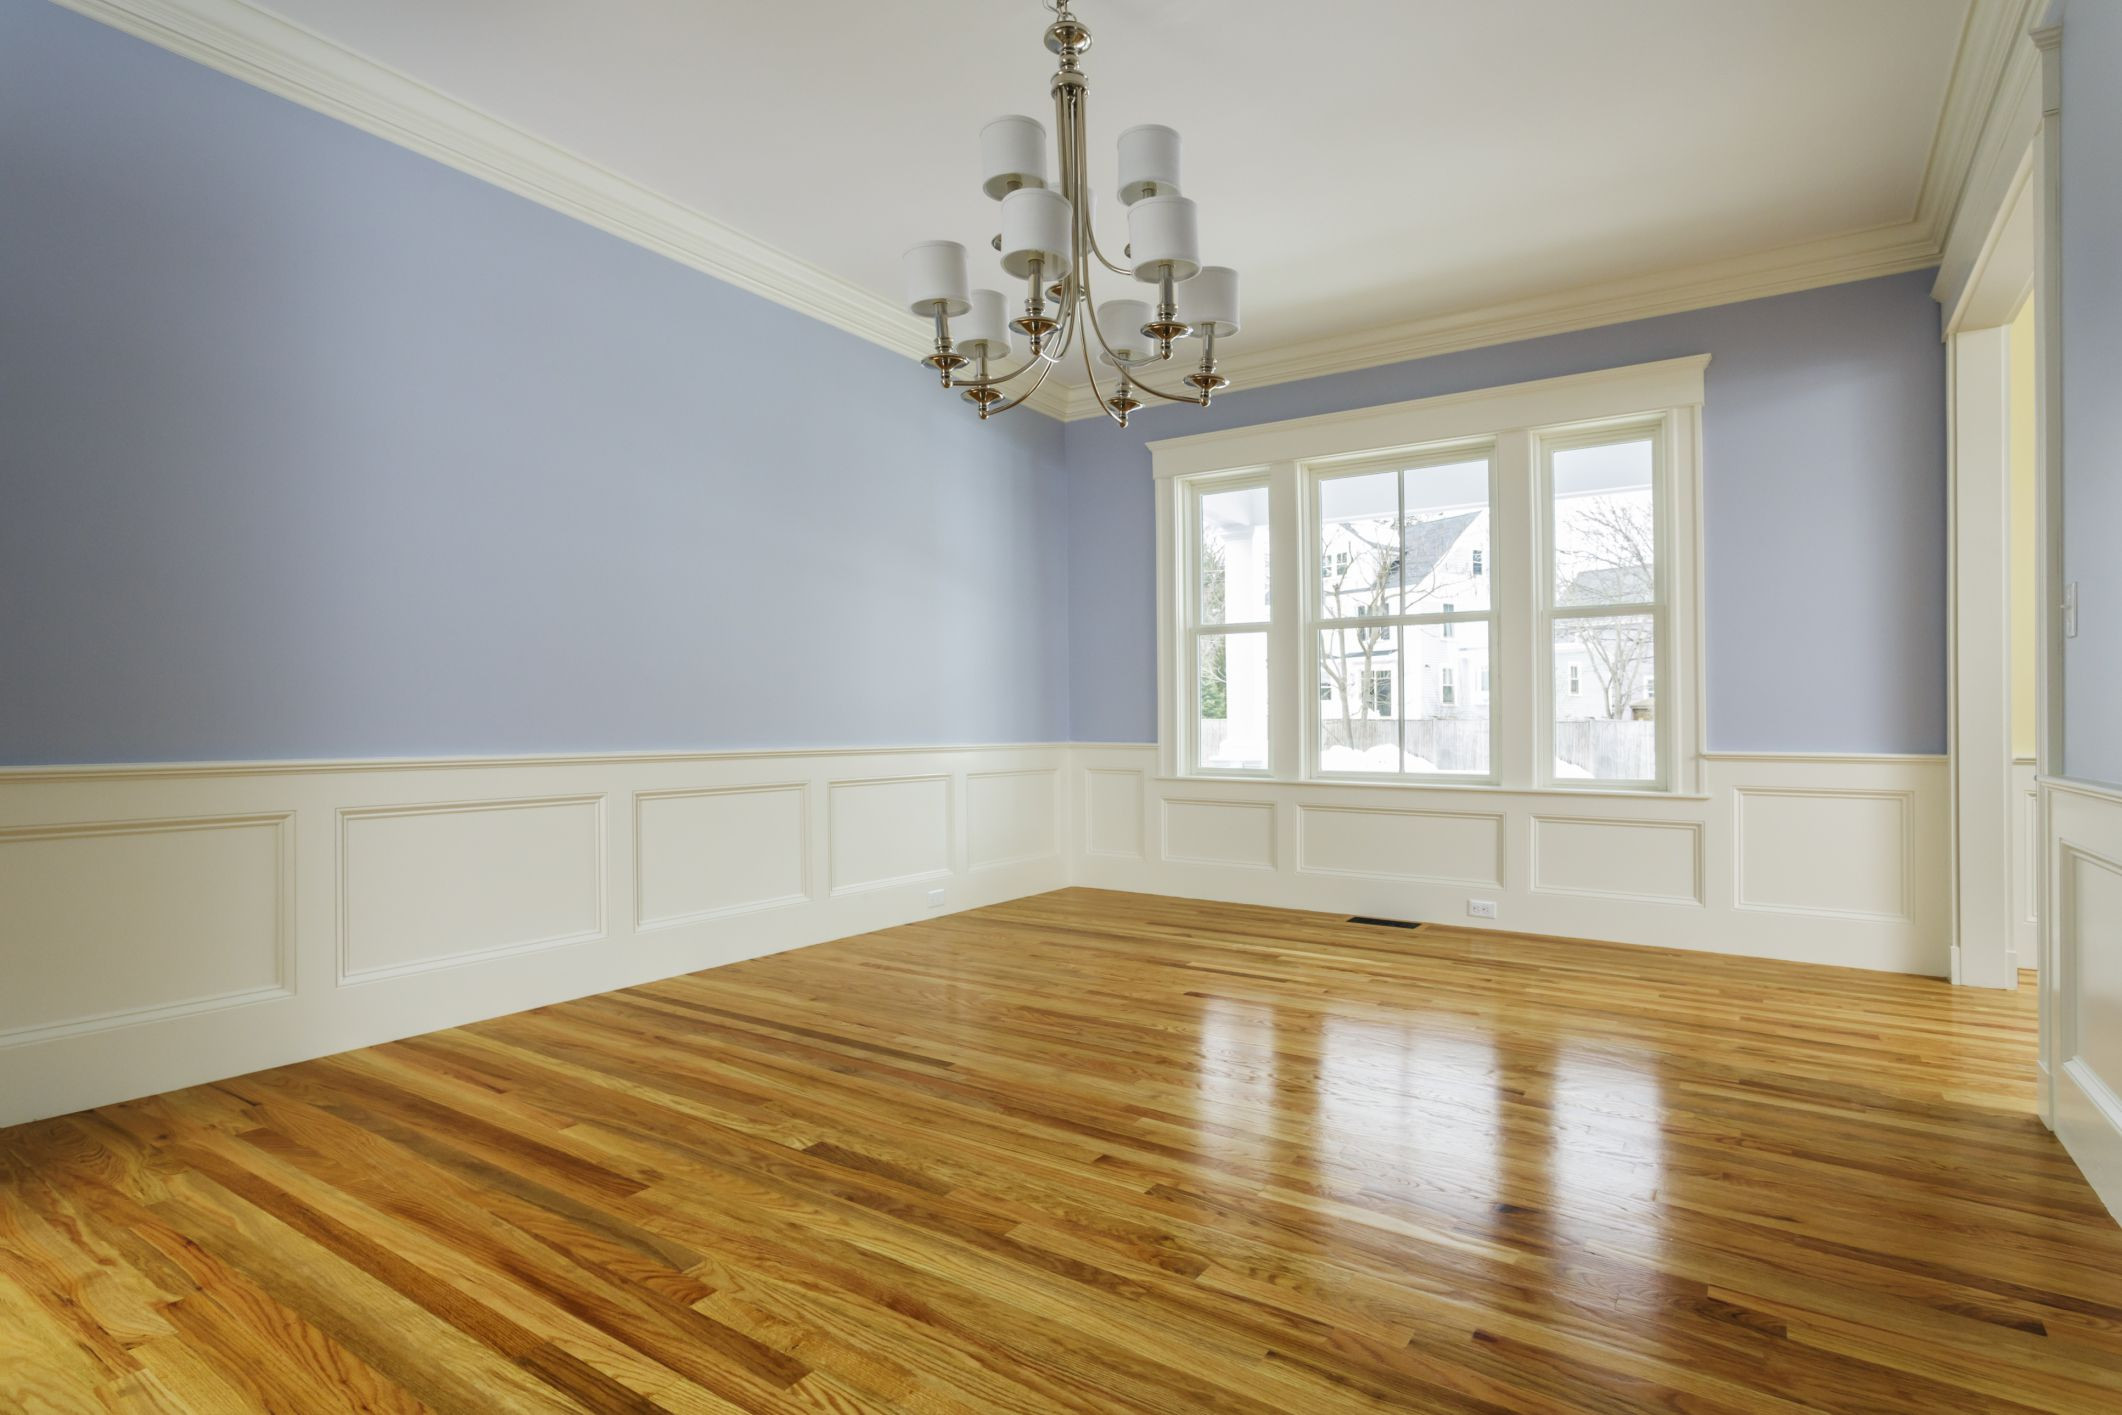 hardwood floor nails coming up of how to make hardwood floors shiny inside 168686572 56a4e87c3df78cf7728544a2